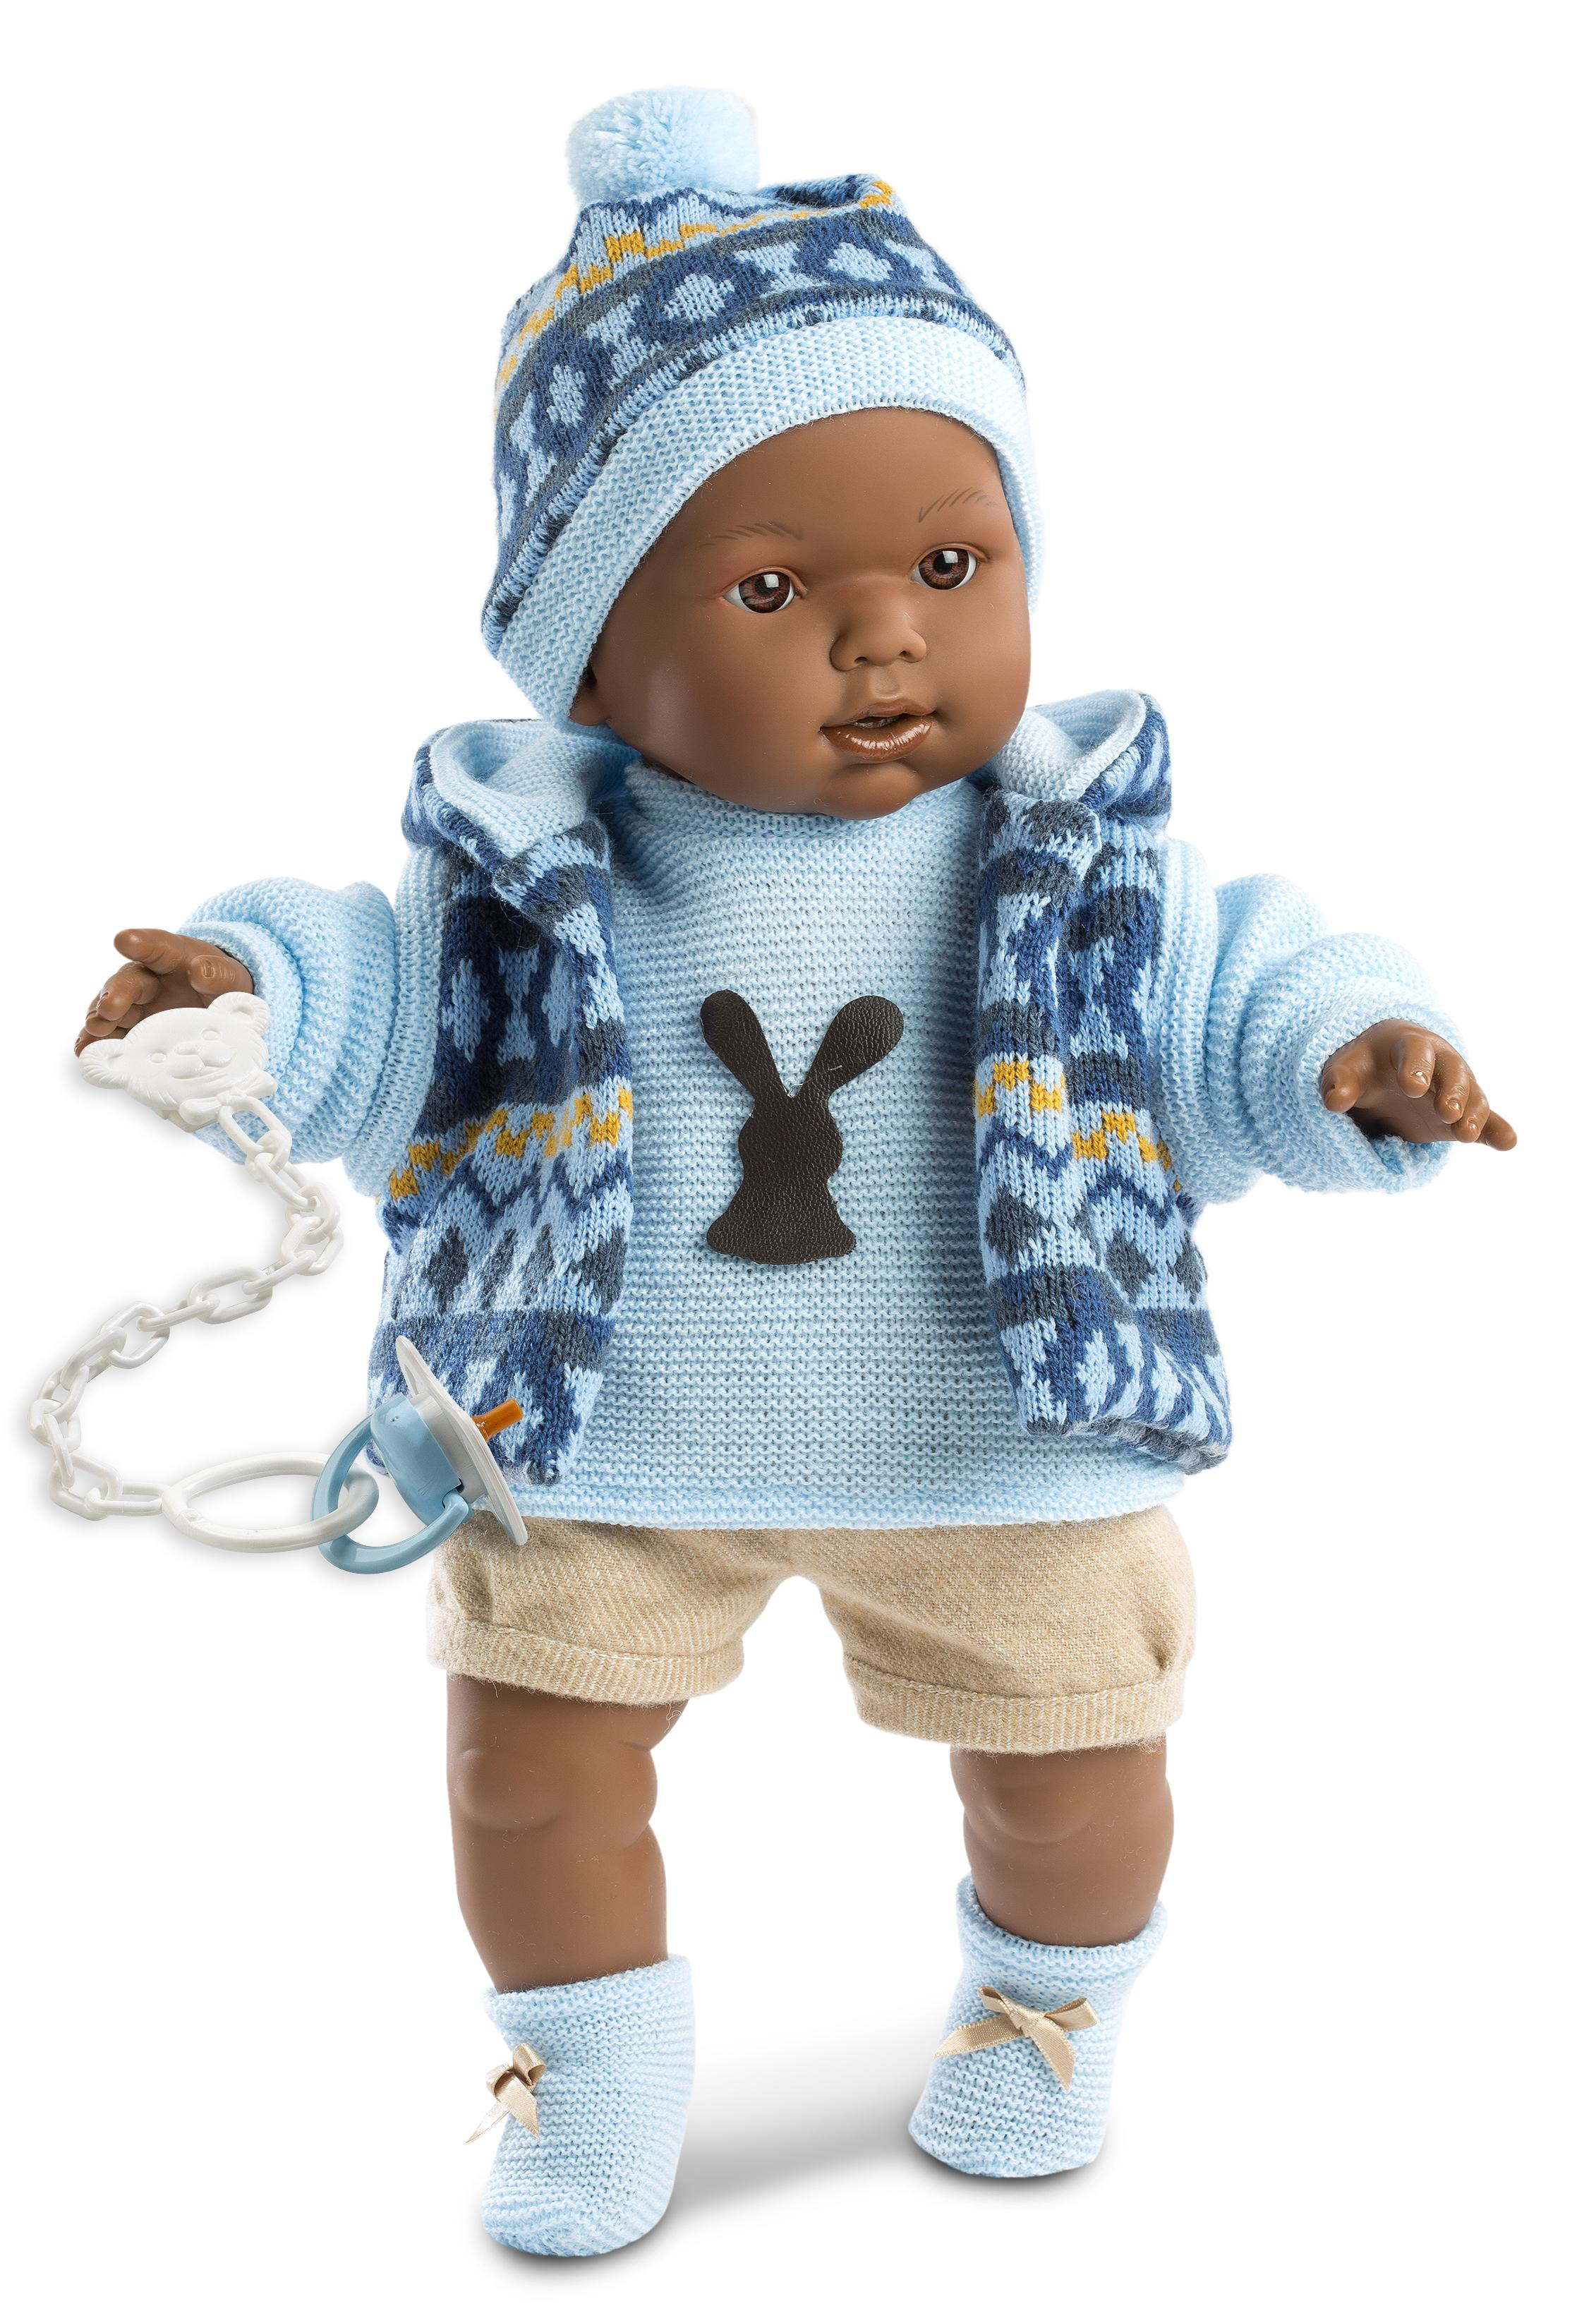 Nathan doll with blue outfit